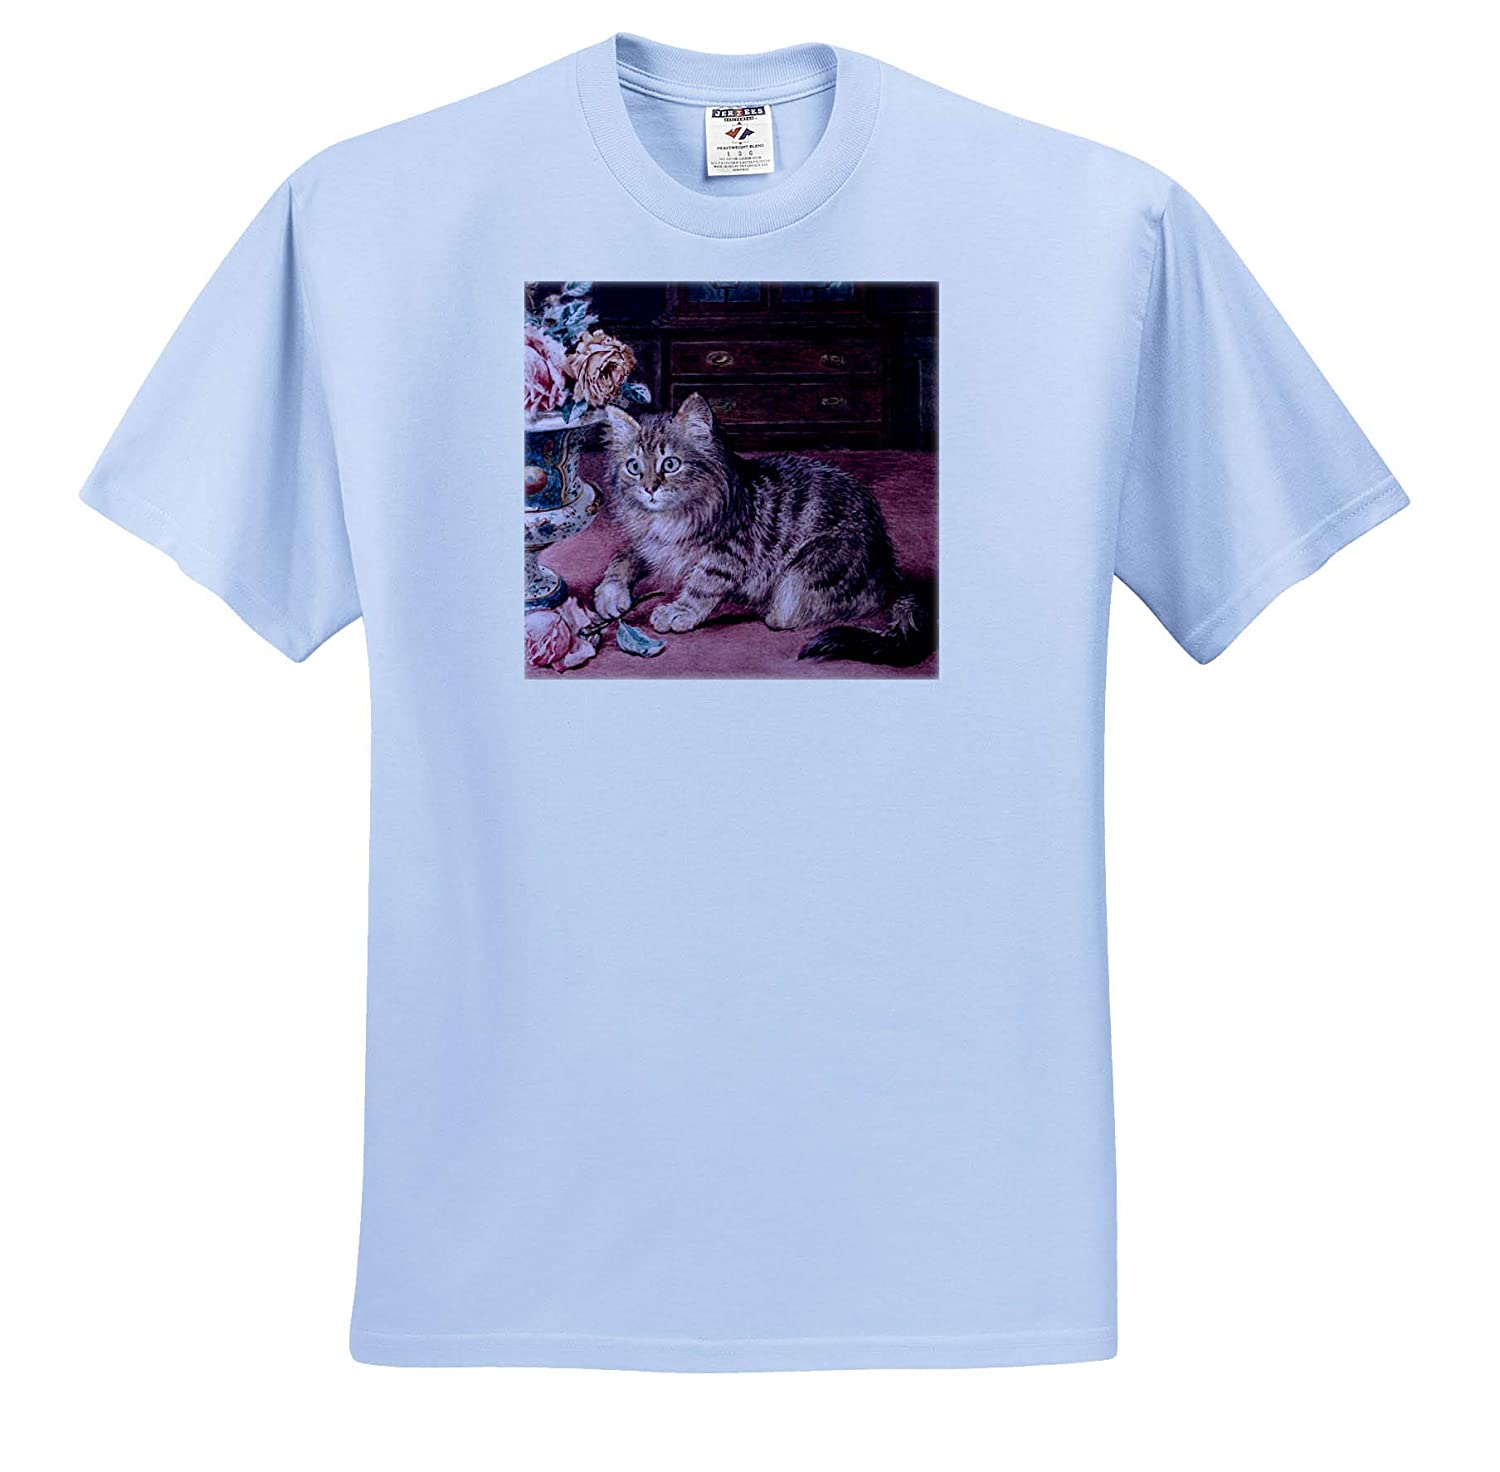 Wilson Hepple T-Shirts Kitten with Roses 3dRose VintageChest Cats